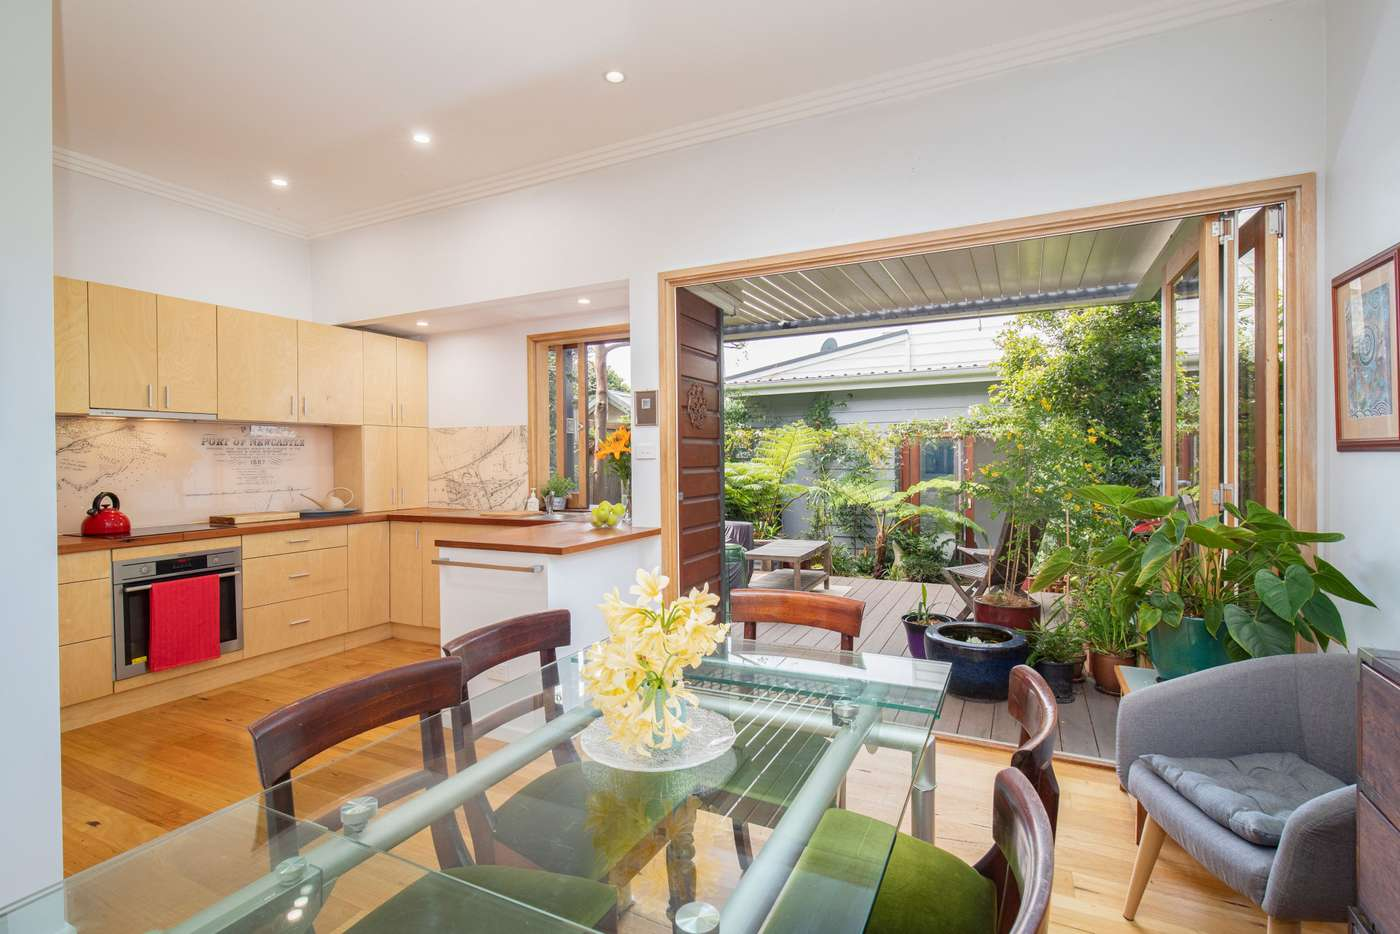 Main view of Homely house listing, 42 Young Street, Carrington NSW 2294